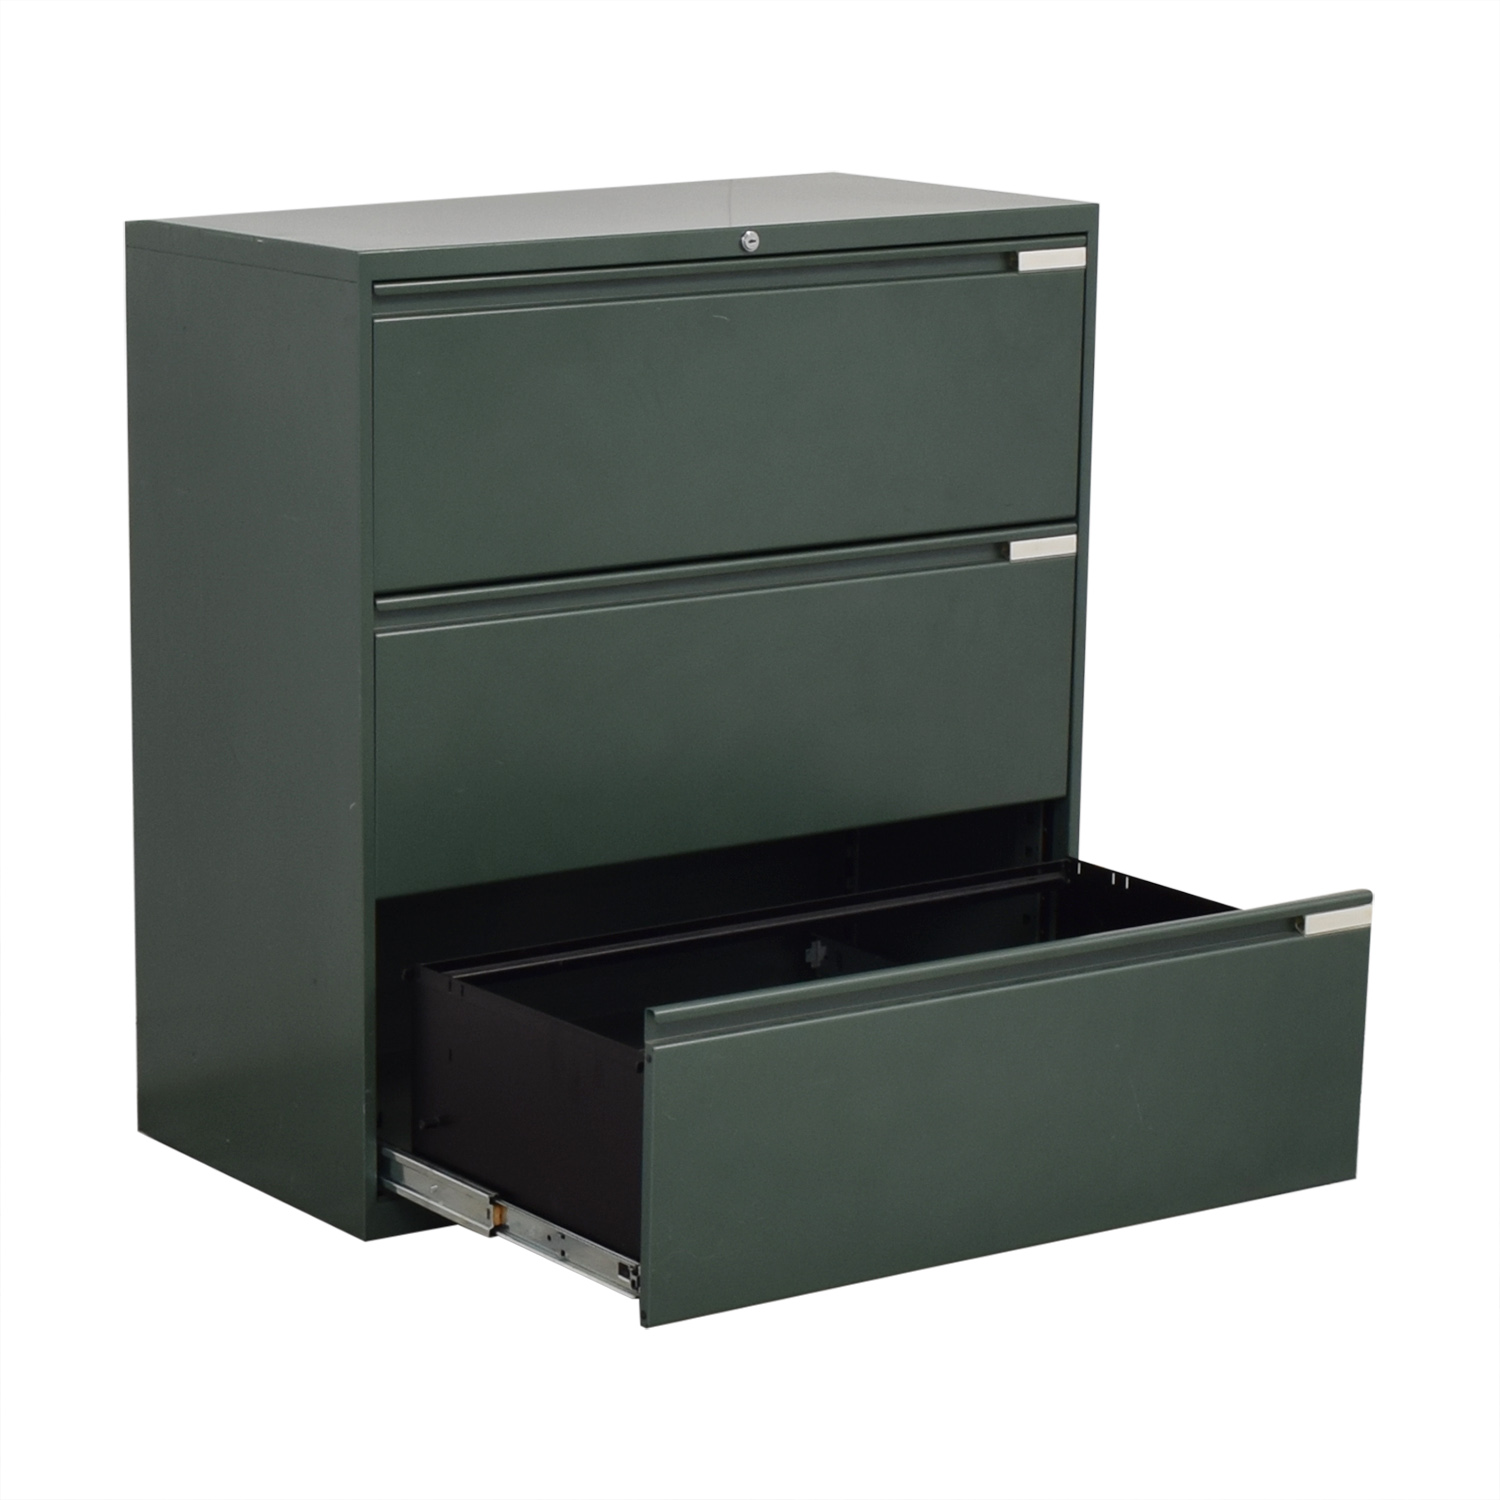 Office Specialty Office Speciality Three Drawer Lateral File Cabinet nj